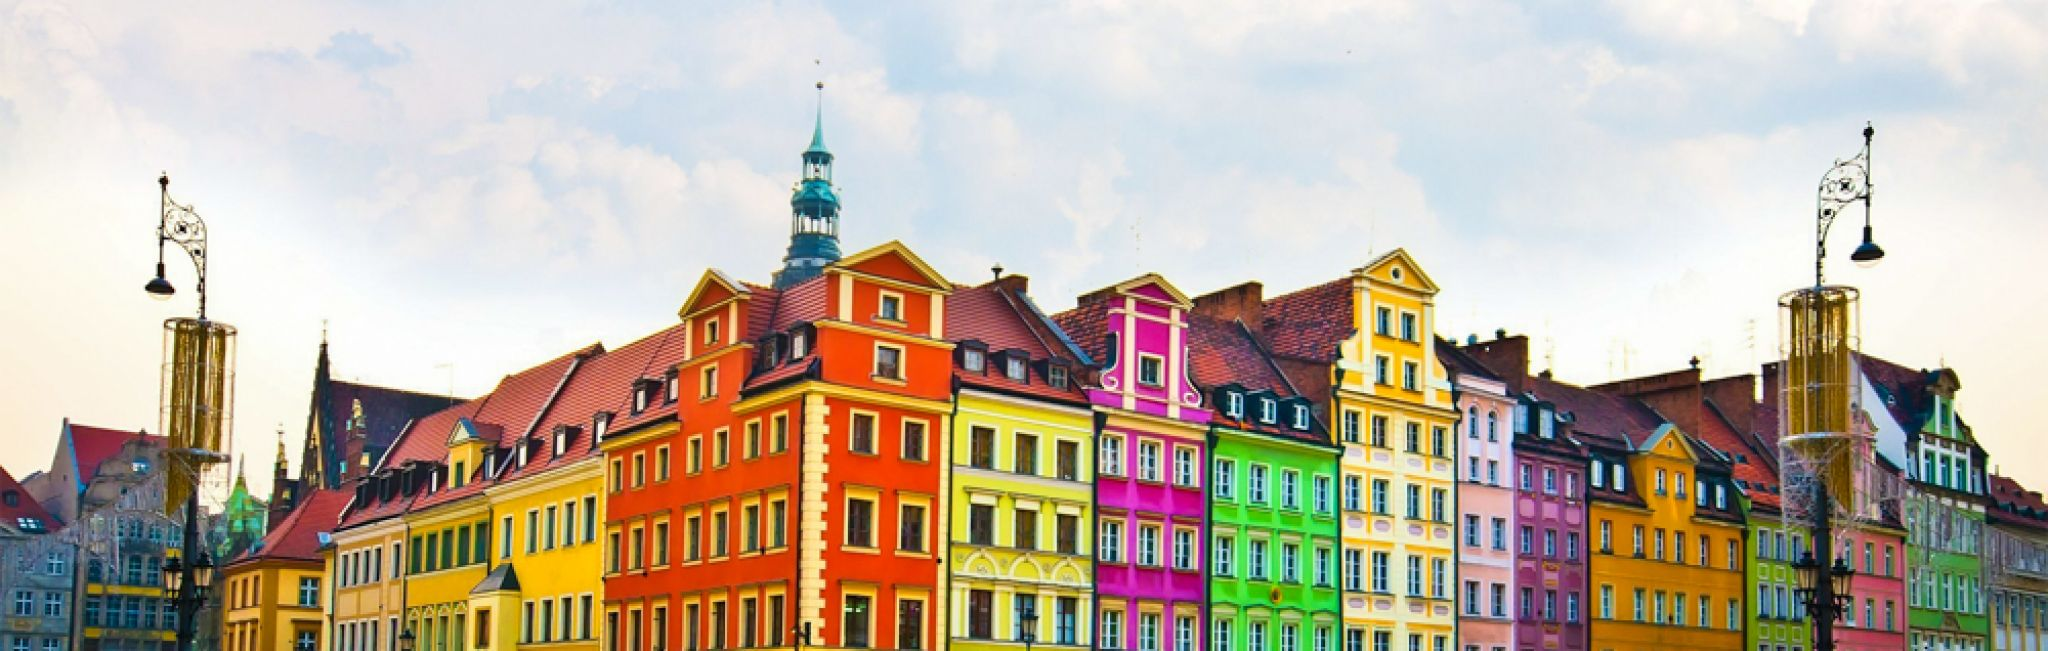 Colorful houses in the city center of Wroclaw, Poland.